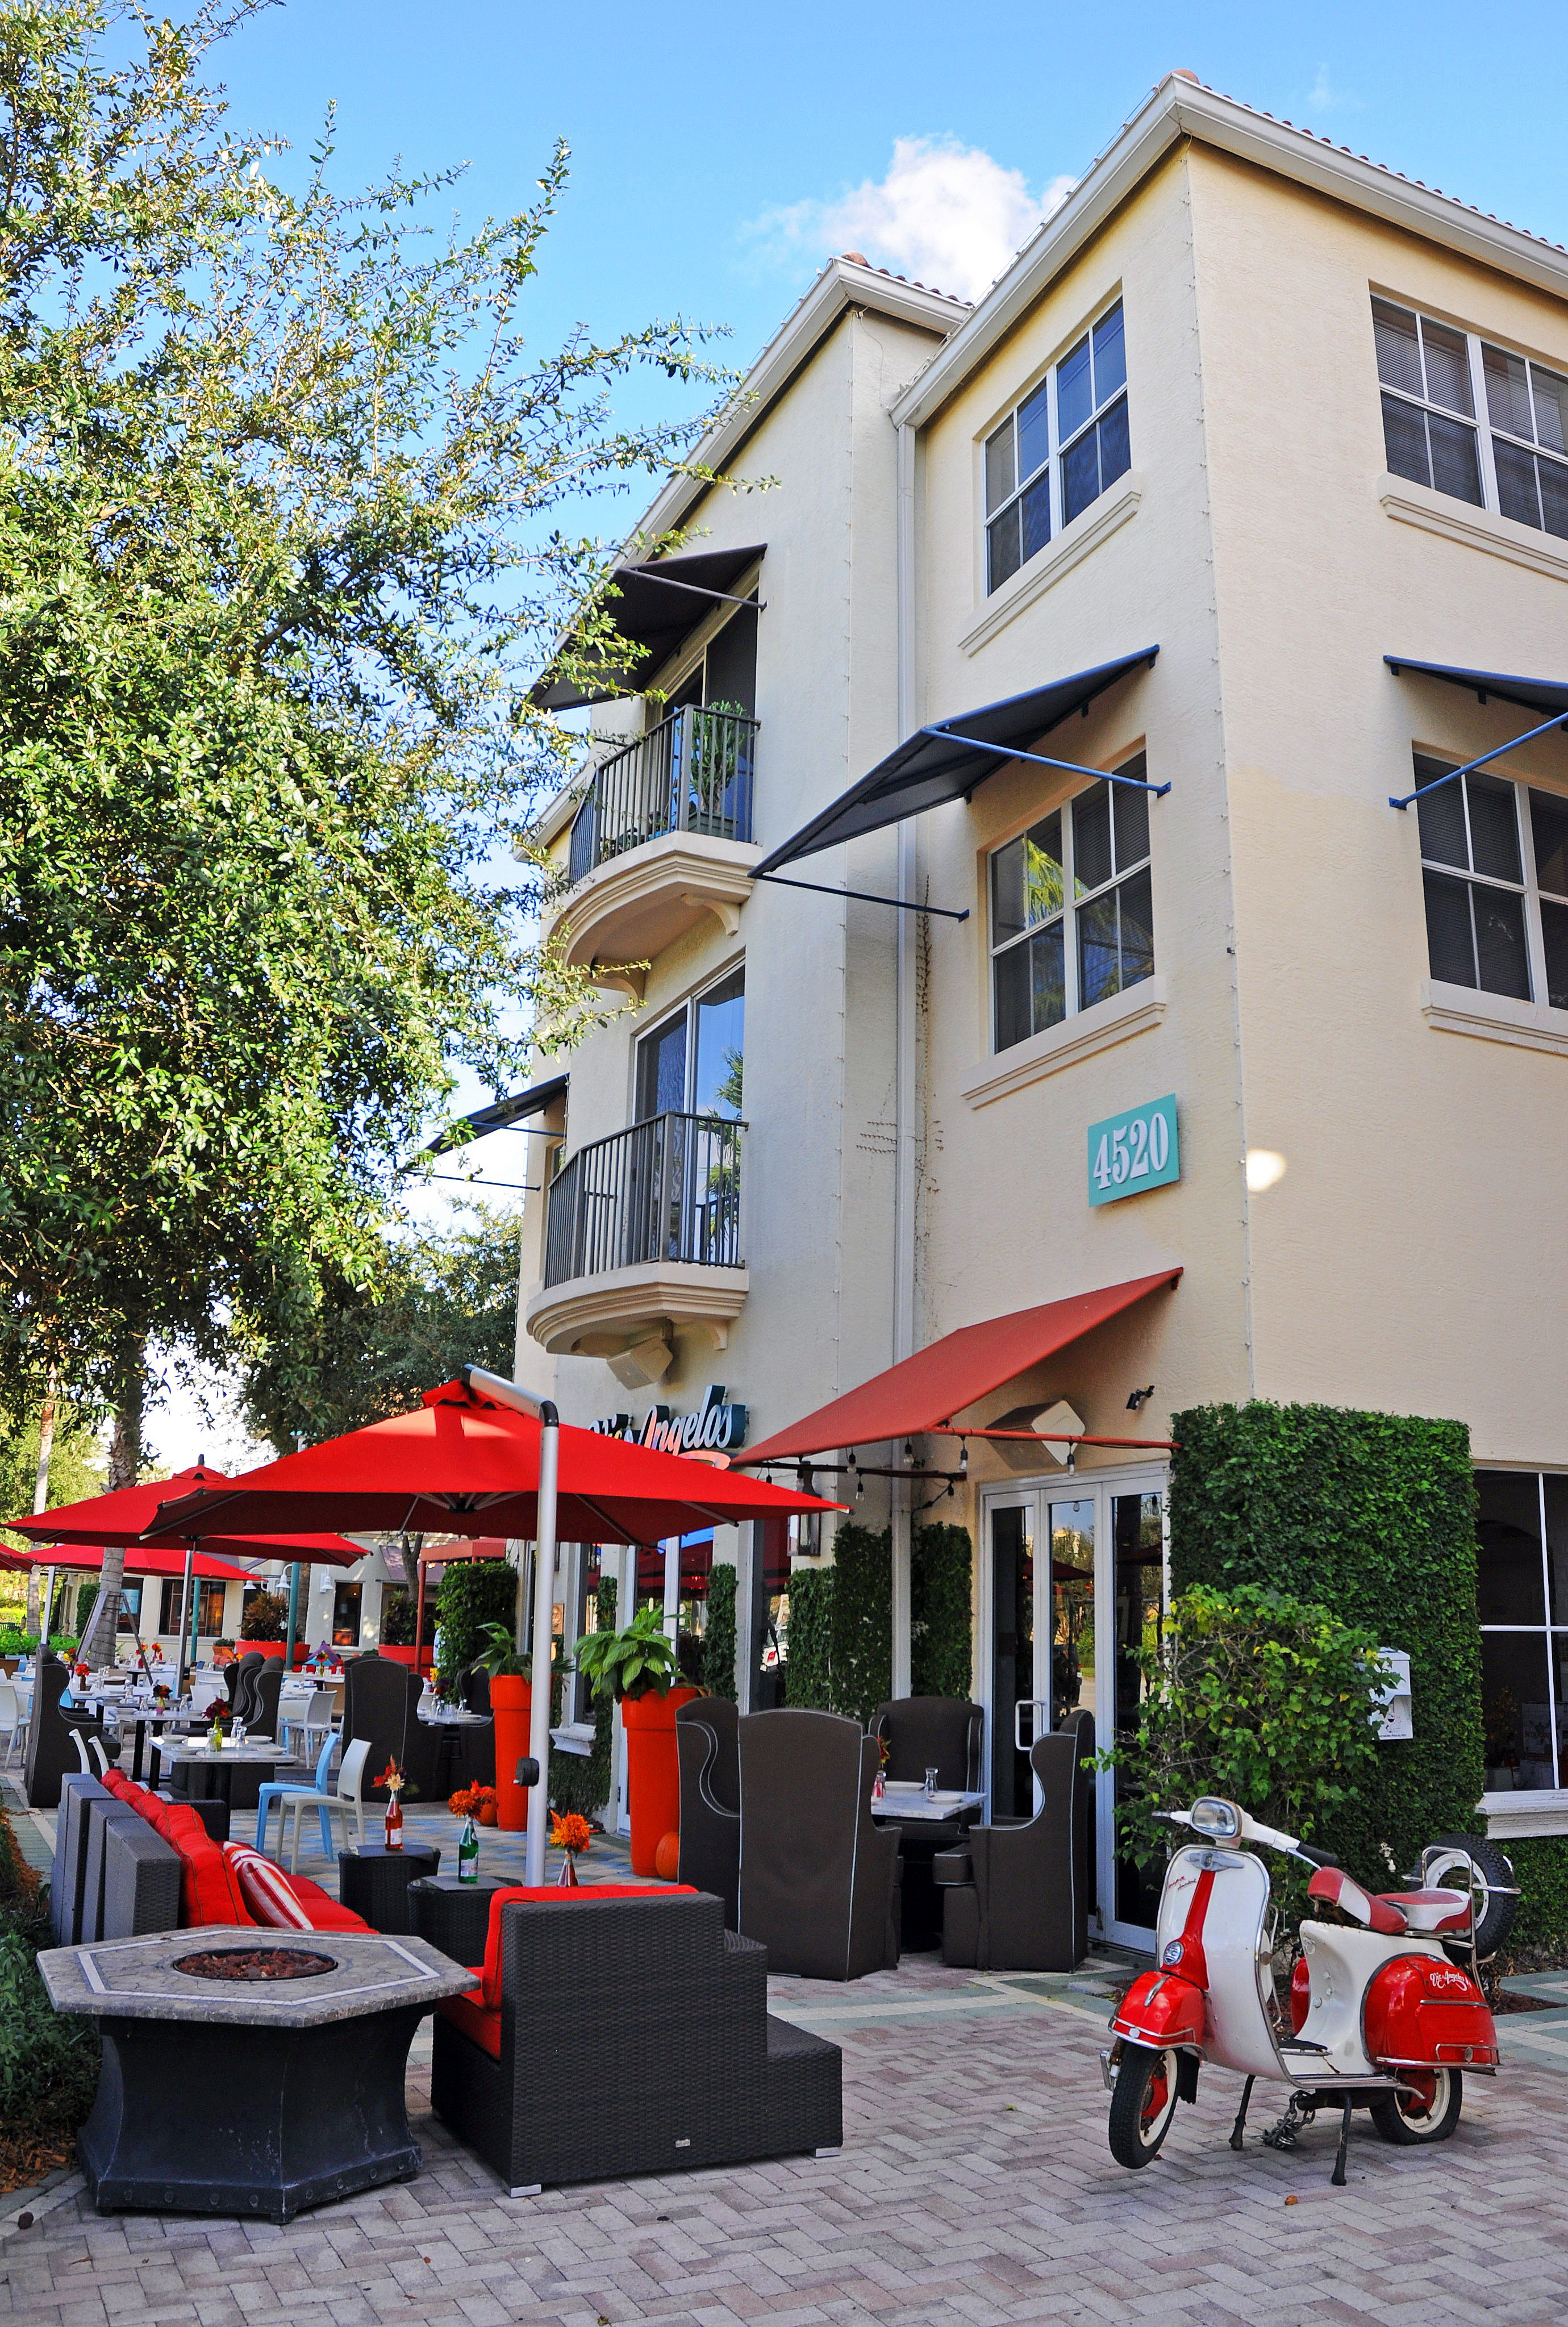 Palm Beach Gardens and all its great Mid Town shops and